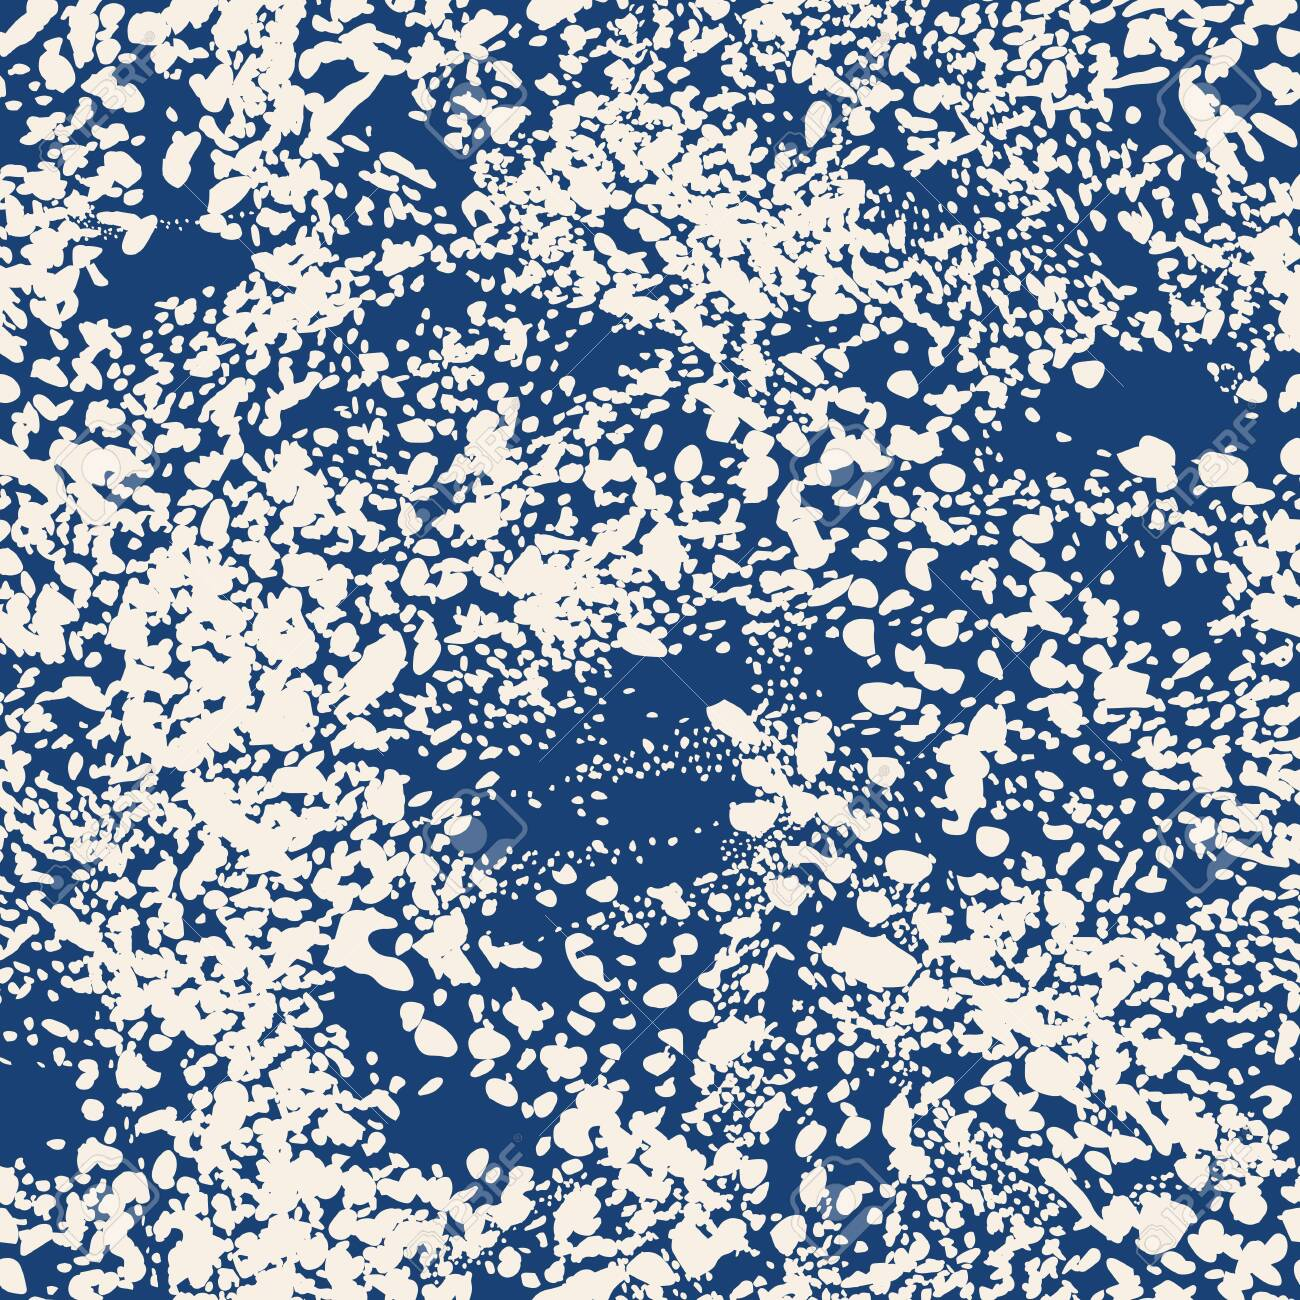 African Rapport Pattern. Leopard Skin Print. Animal Camouflage Background. Indigo and Beige Watercolor Camouflage Design. Spot Tile. Leopard Vector Seamless Pattern. Animal Abstract Texture. - 134572080